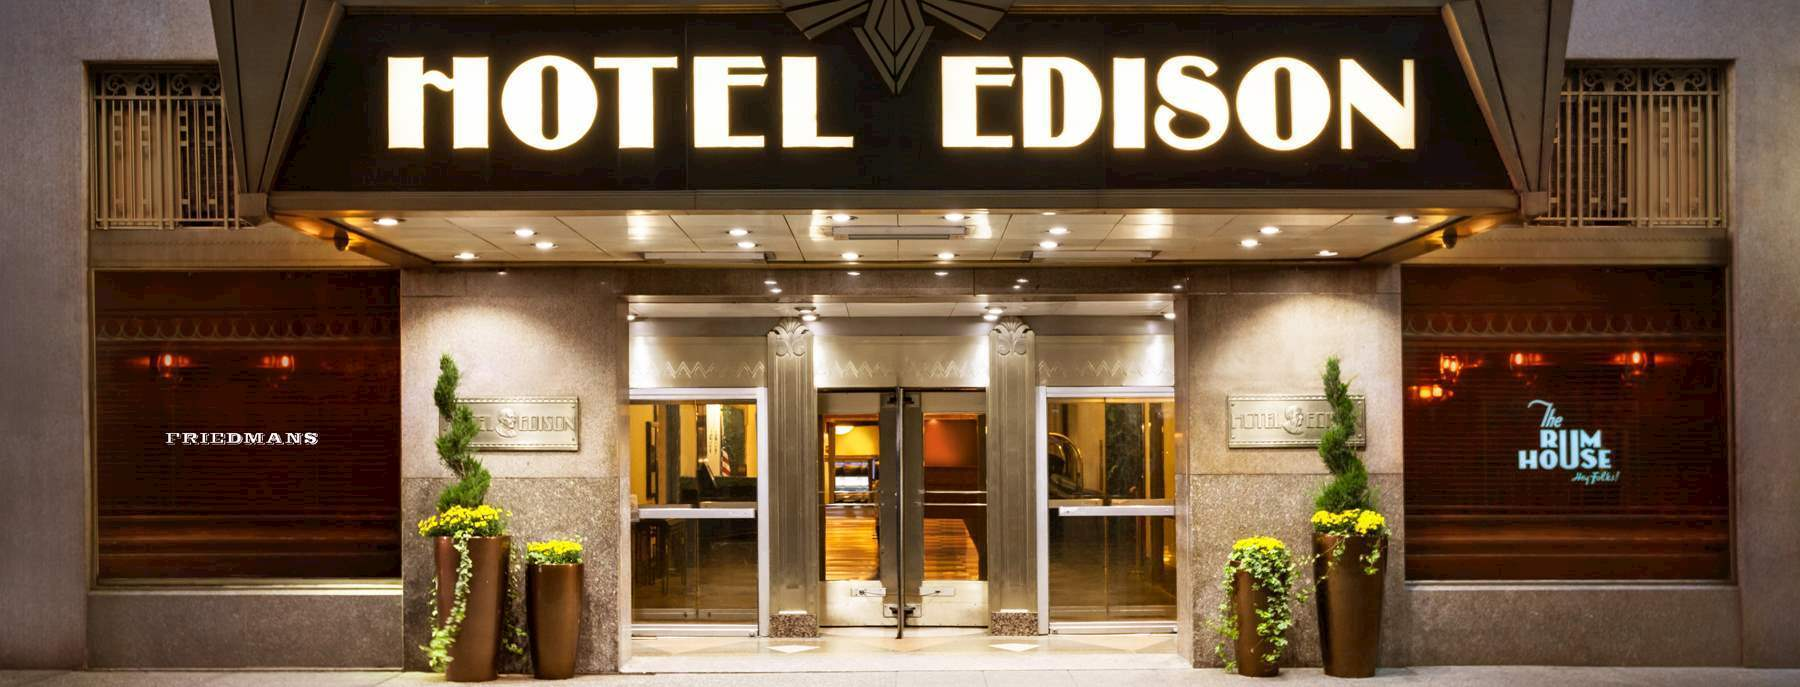 Hotel Edison | The Best Value Luxury Hotel in NYC's Times Square